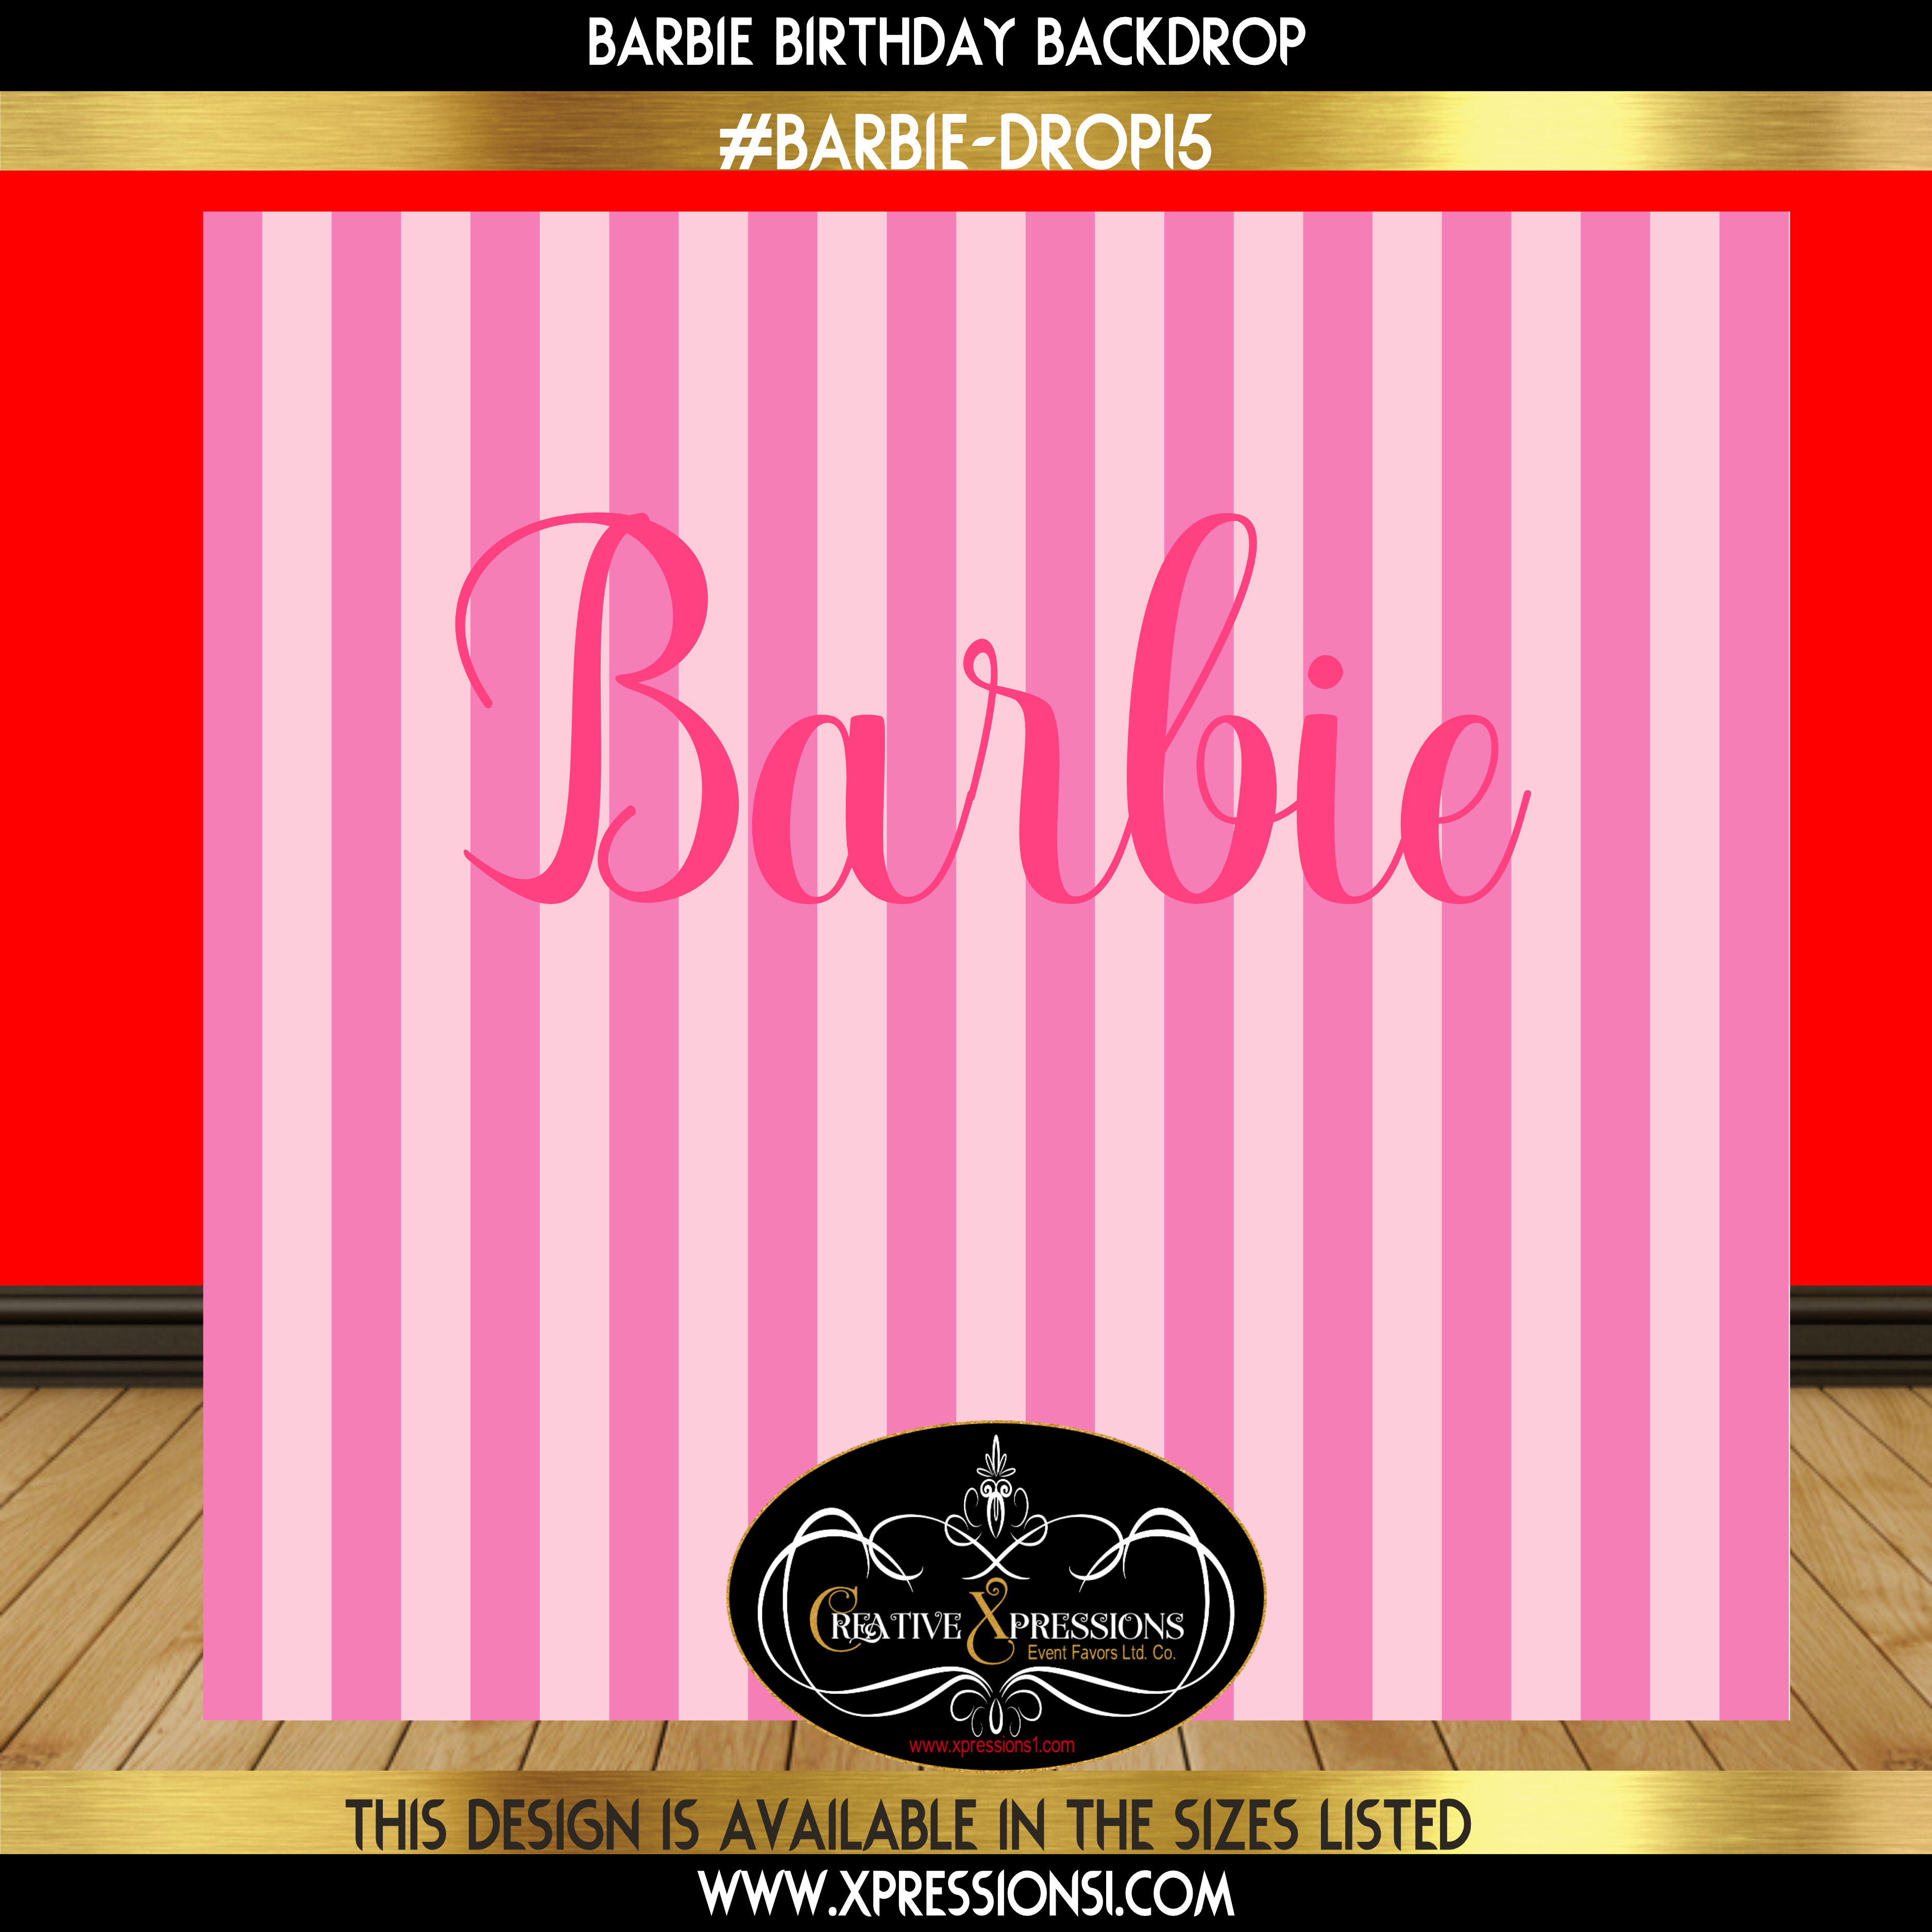 Barbie Birthday Backdrop